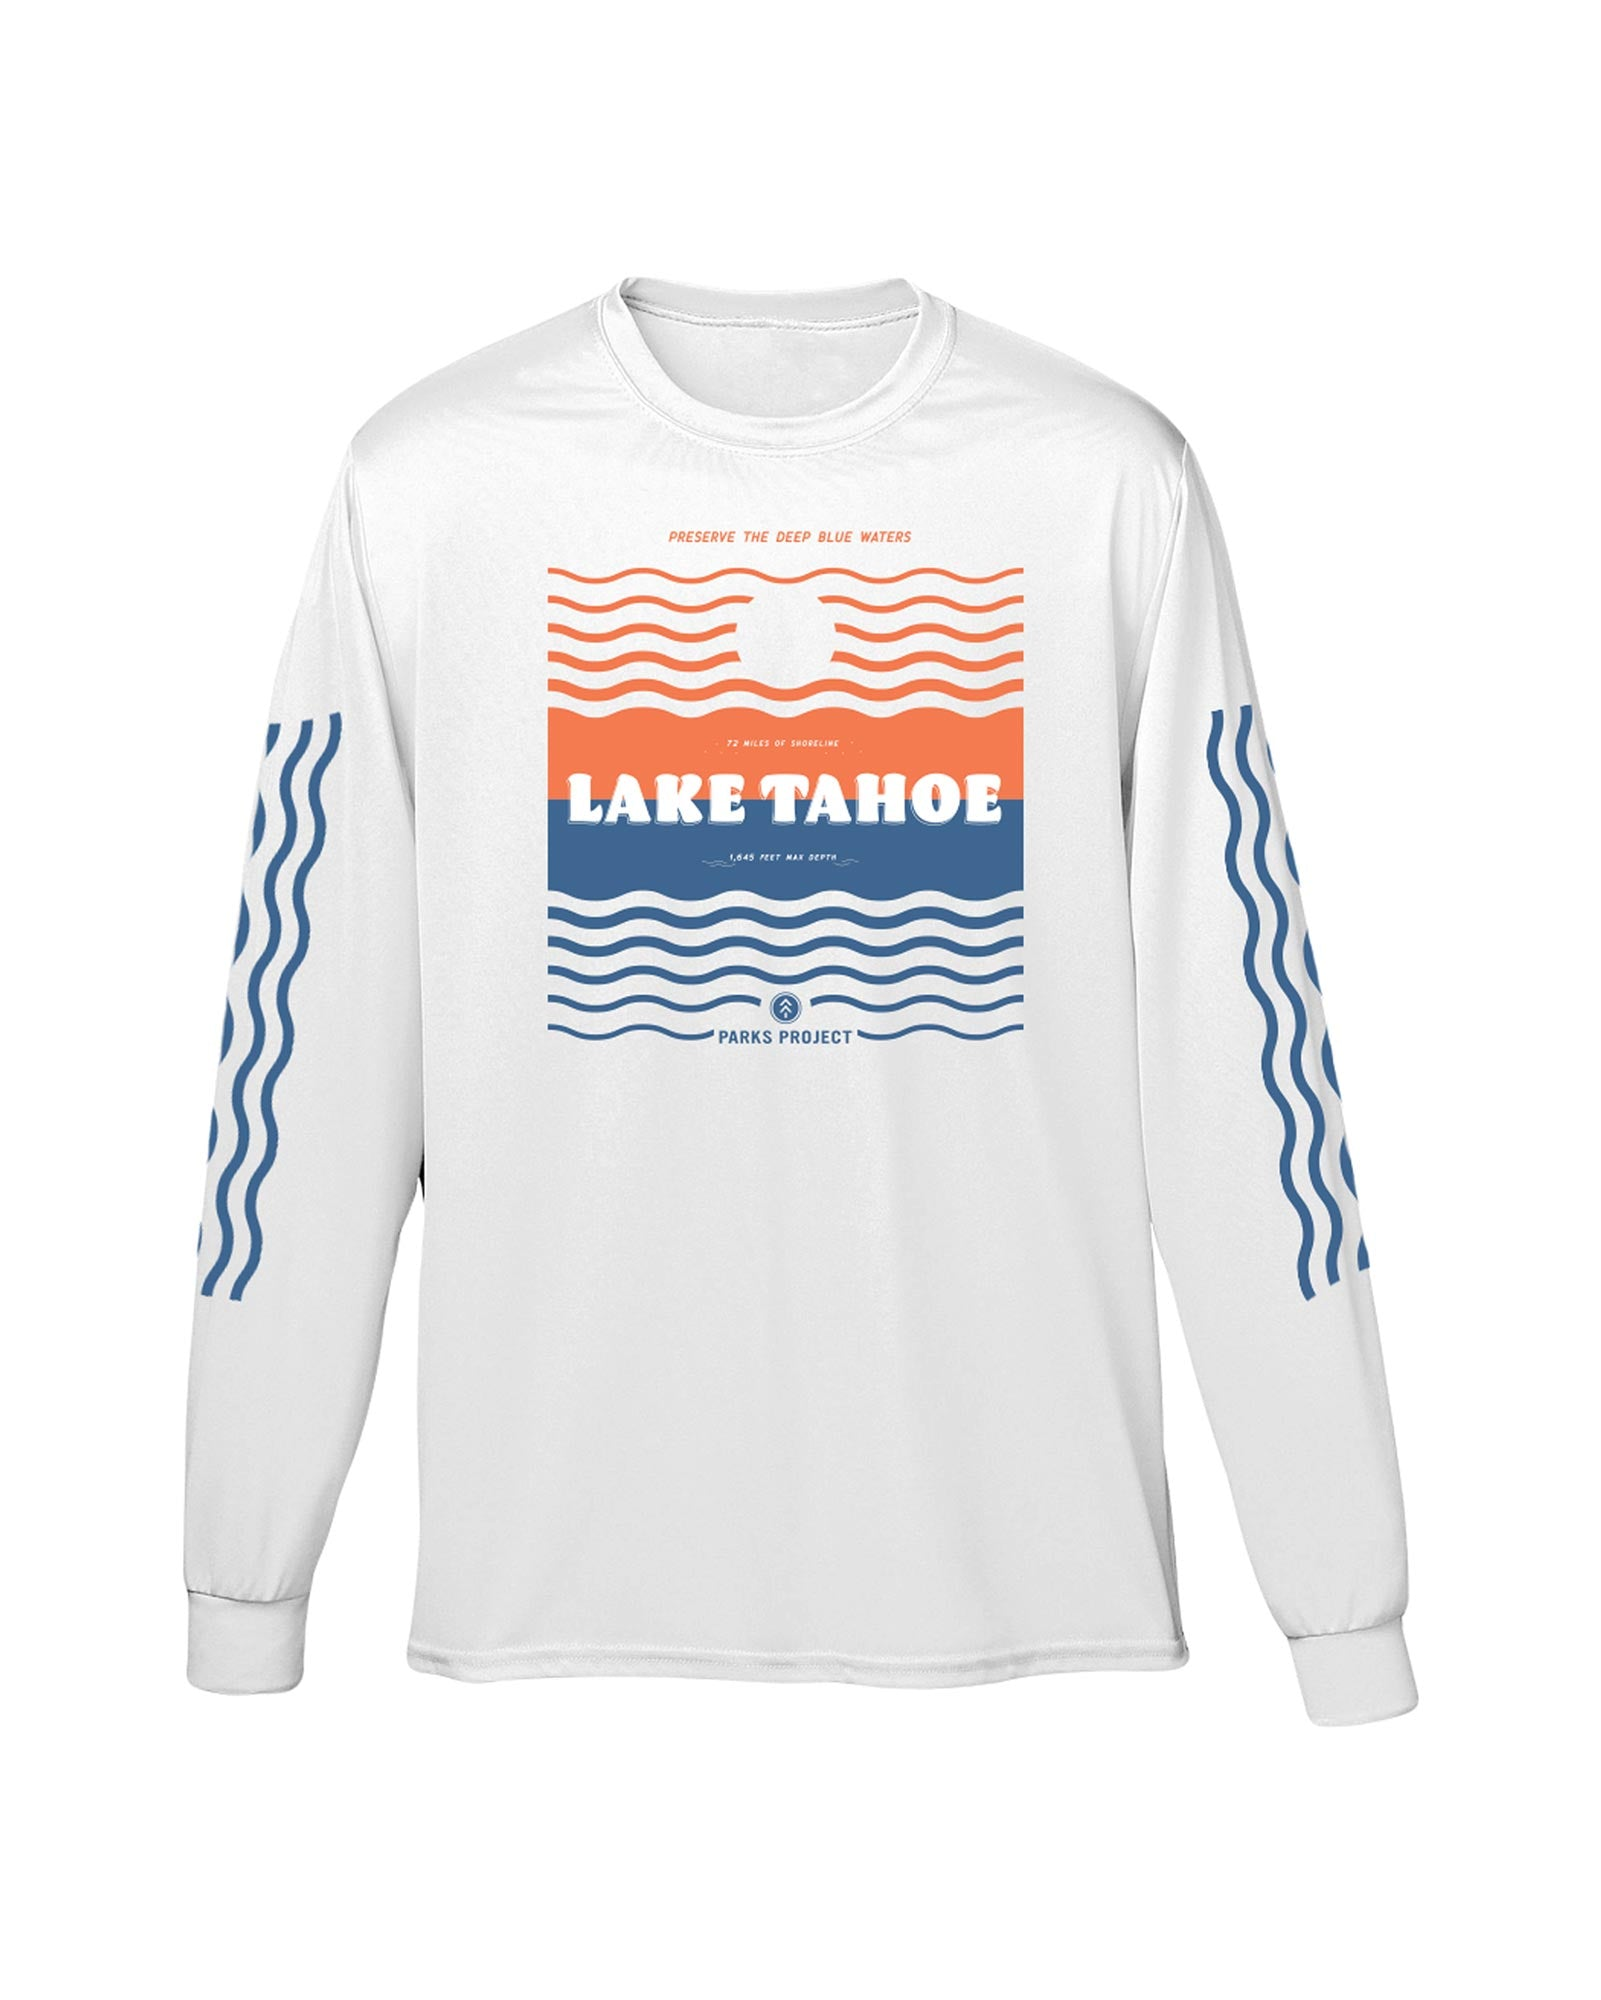 Preserve Lake Tahoe Long Sleeve Tee | Parks Project | National Park Longsleeve